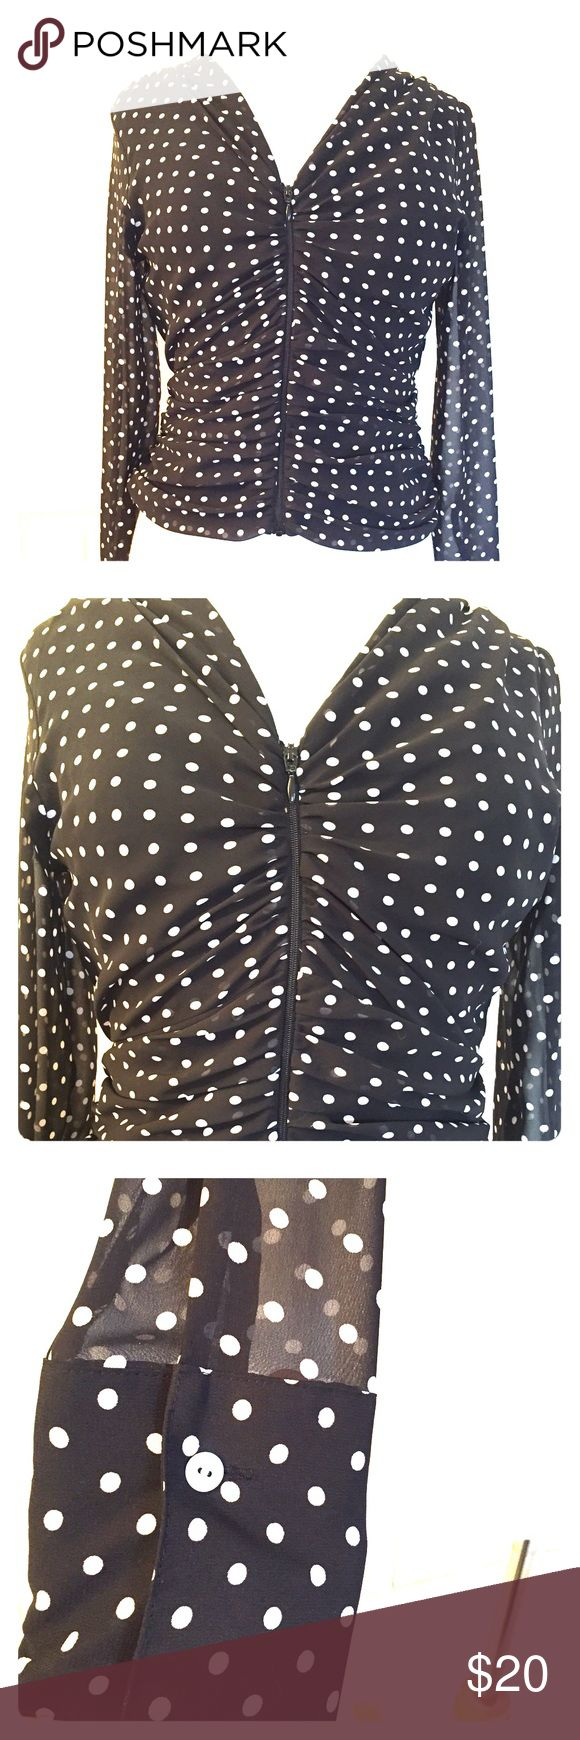 Black polka dot dressy zip up long sleeve top This is a super adorable only worn once zip up top. It's wears like a jacket or cover up and feels like silk. 100% polyester, the body is lined on the interior and the sleeves are sheer. Form fitting. Size small by Le Caviar. Tops Blouses